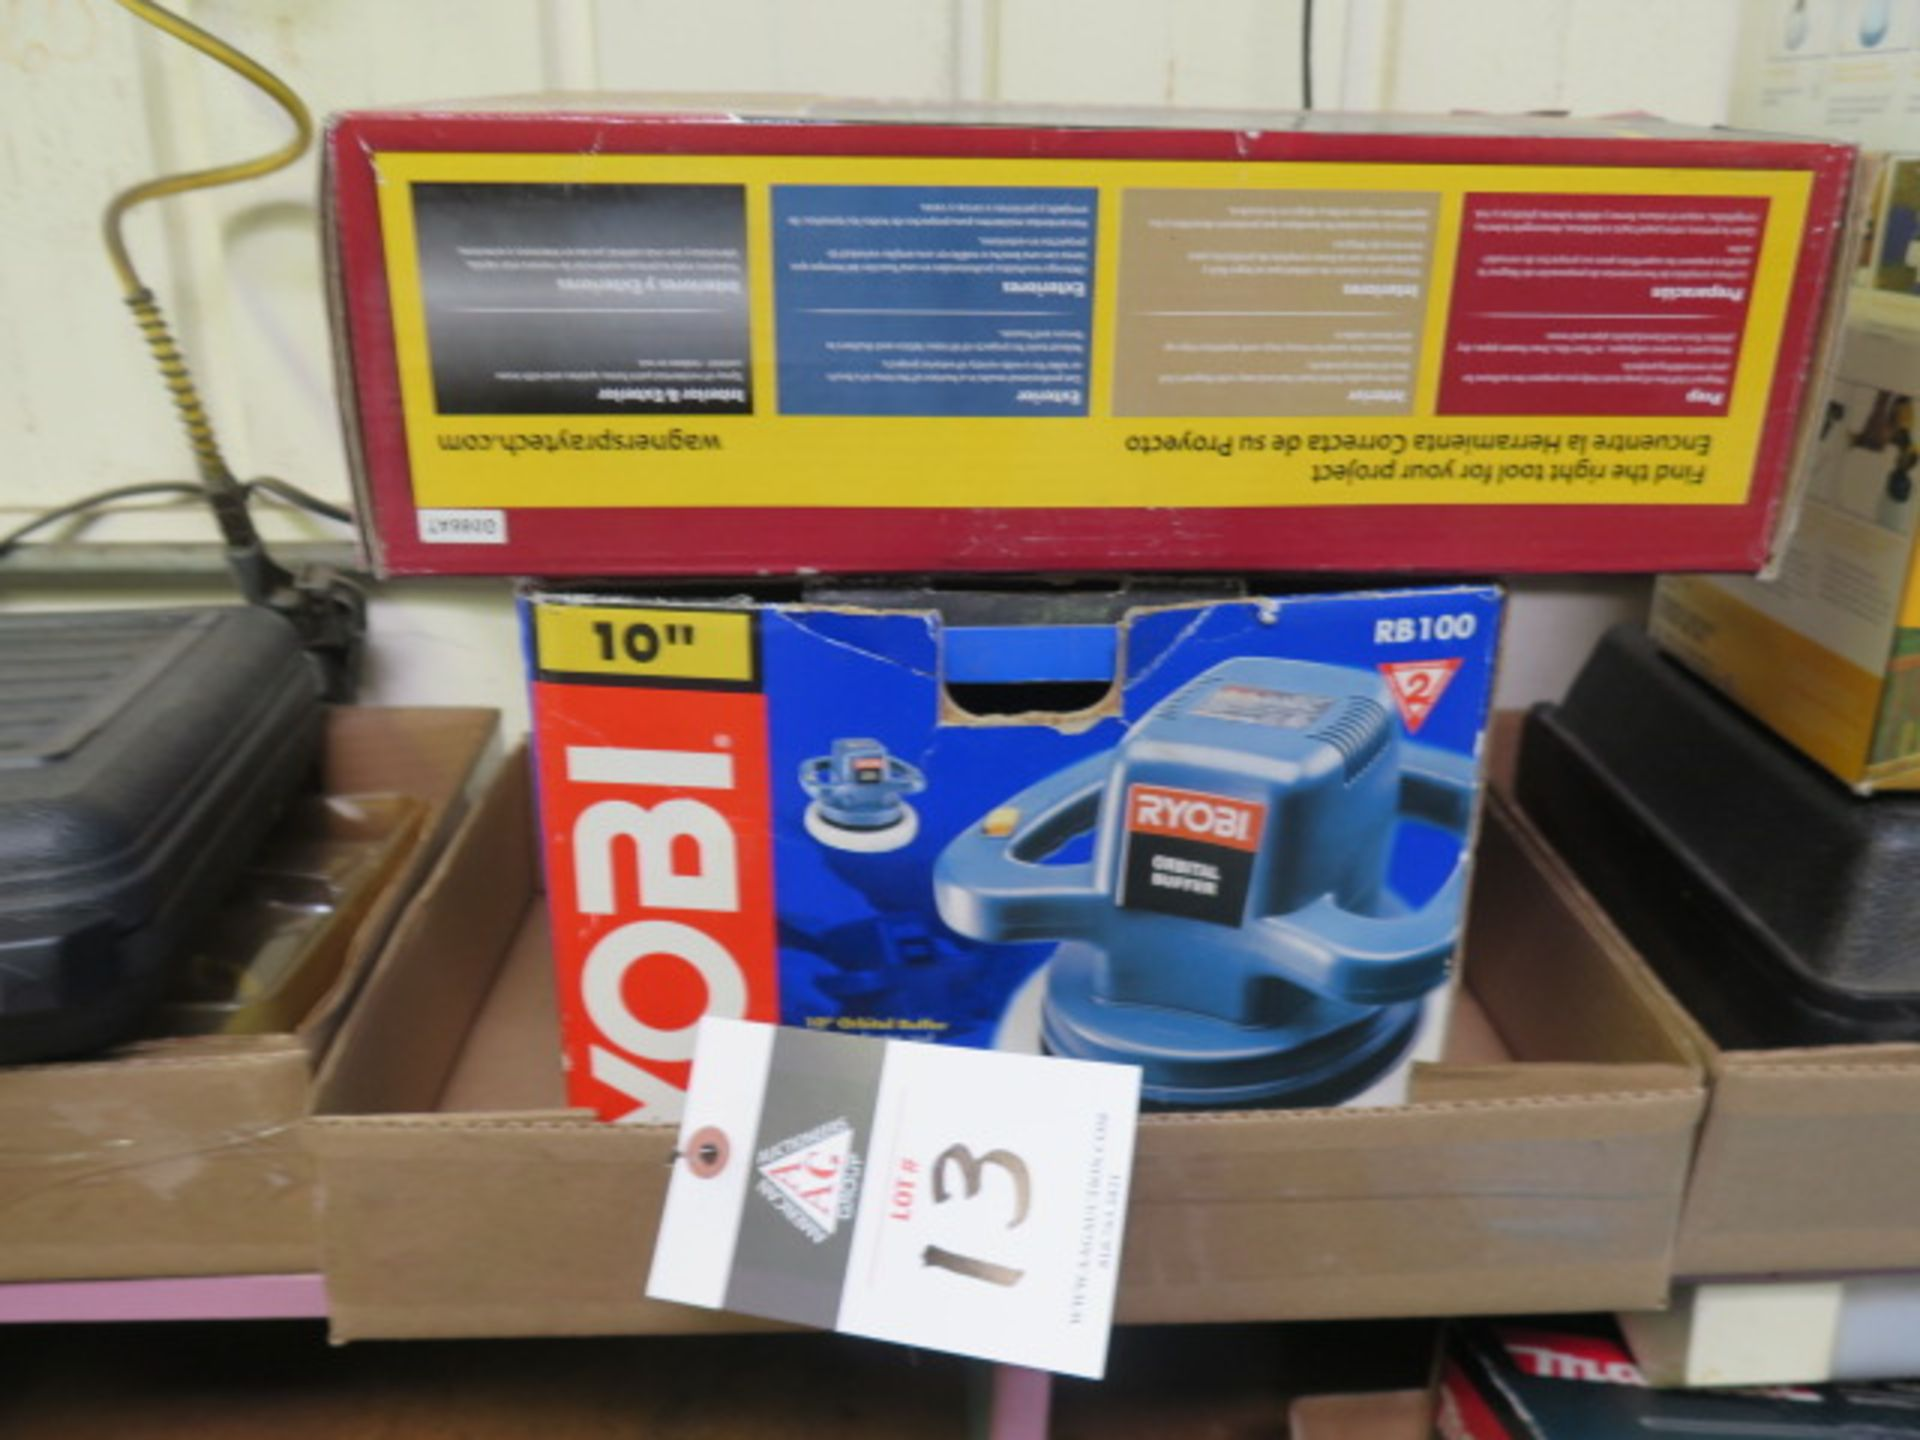 Lot 13 - Wagner Heat Tool Set and Ryobi Orbital Sander (SOLD AS-IS - NO WARRANTY)